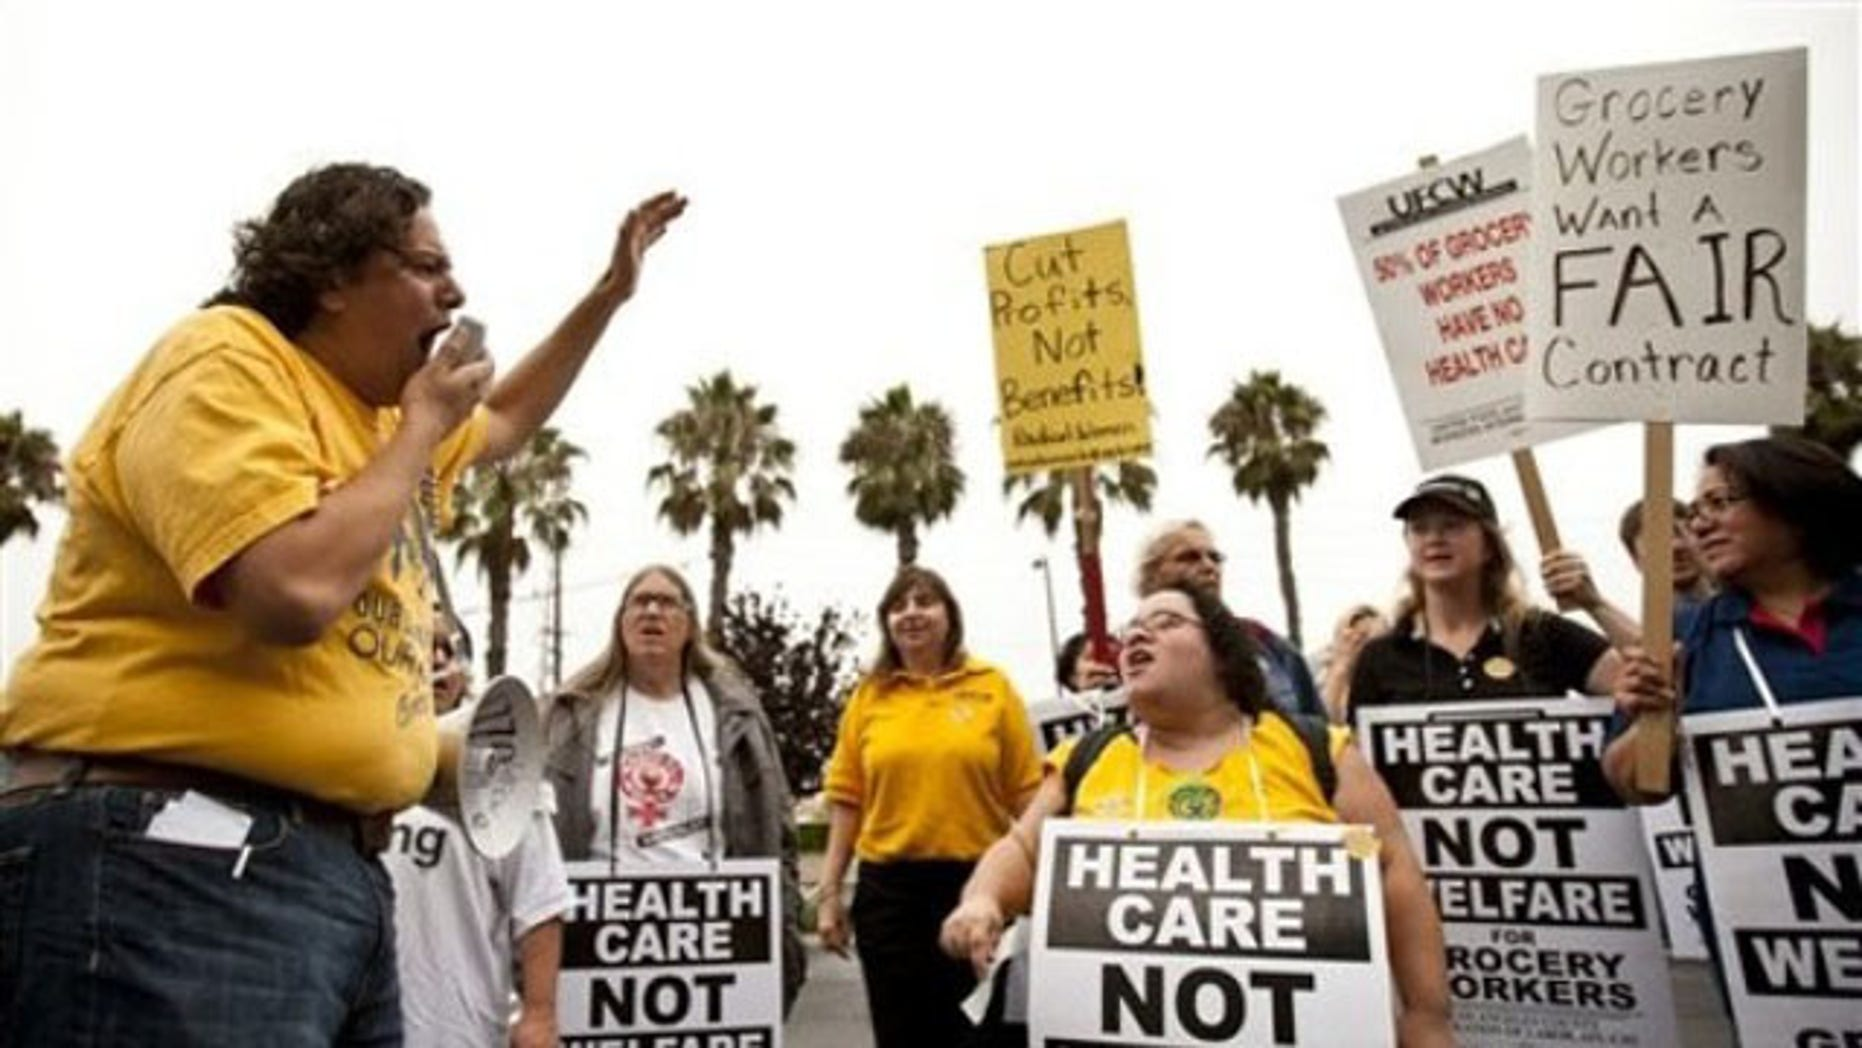 Sept. 16: Local 770 Vice President Rigo Valdez, left, leads a chant during a rally for better health care and benefits for grocery store workers at the Ralphs grocery store in Marina Del Ray, Calif.